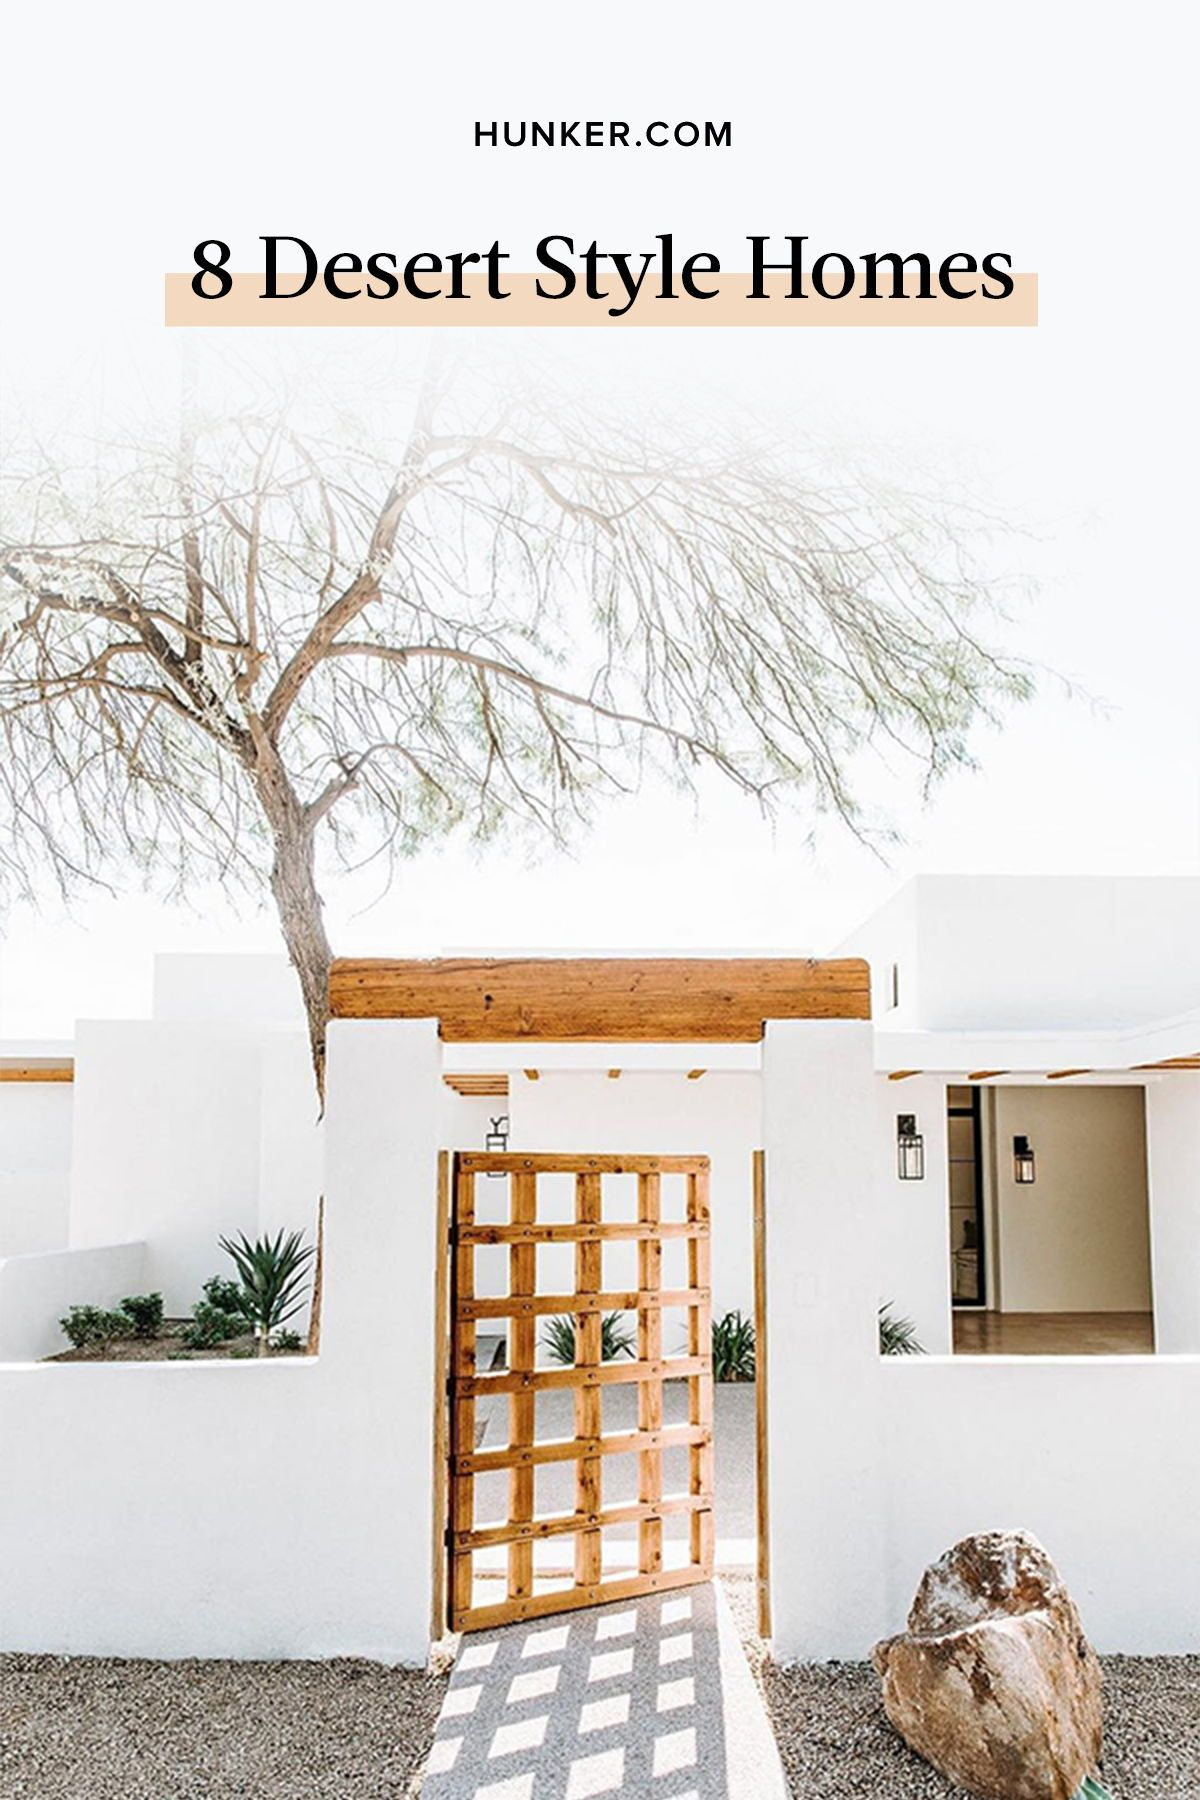 Pin By Hdi 19 On Southwest House With Images: These Desert Style Homes Will Have You Pining For The Southwest In 2020